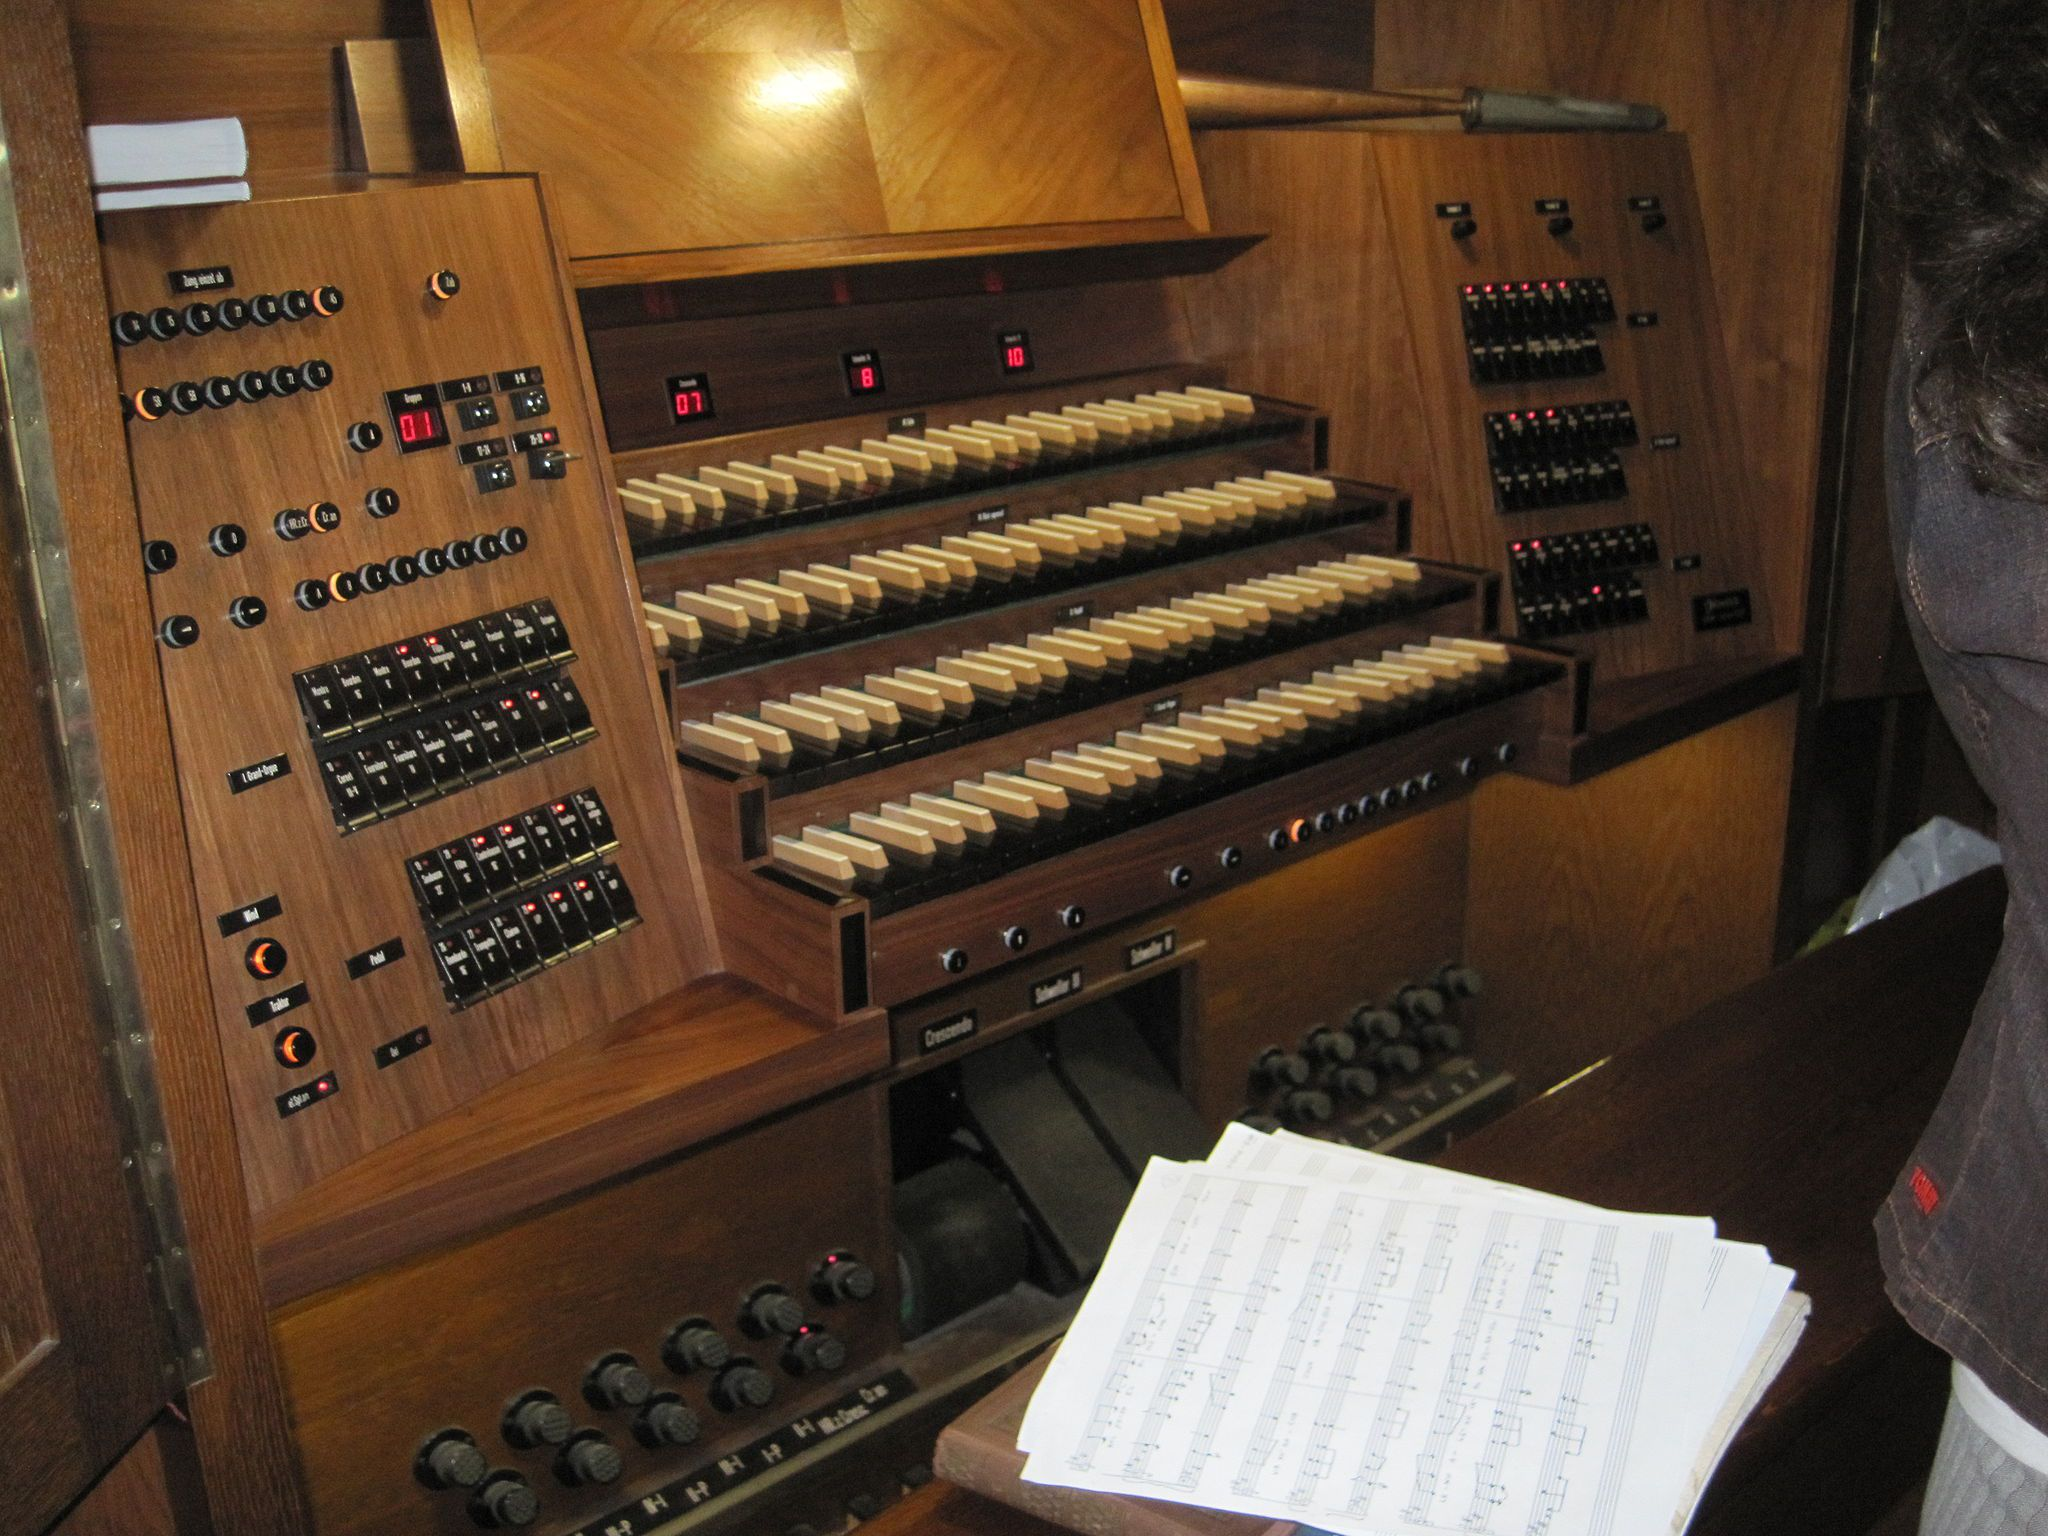 Secondary keyboard of the organ at the Dohány Synagogue.